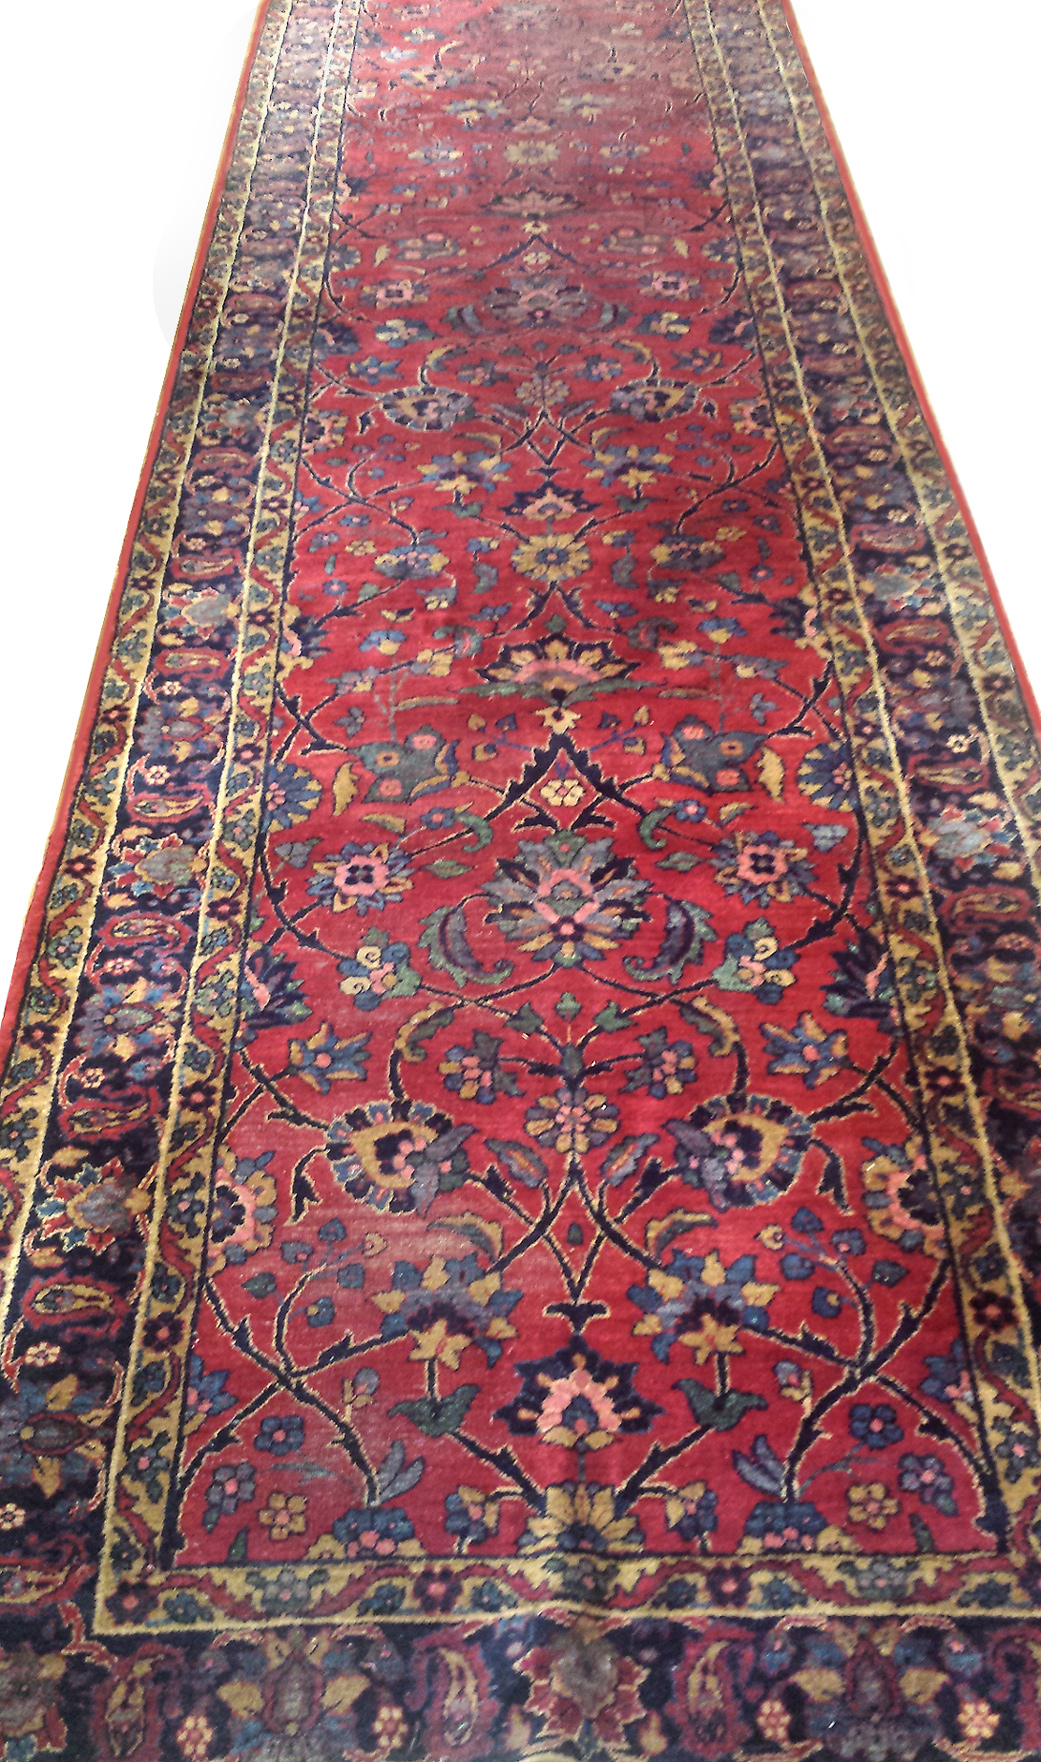 Antique Persian Manchester Kashan Rug c. 1910